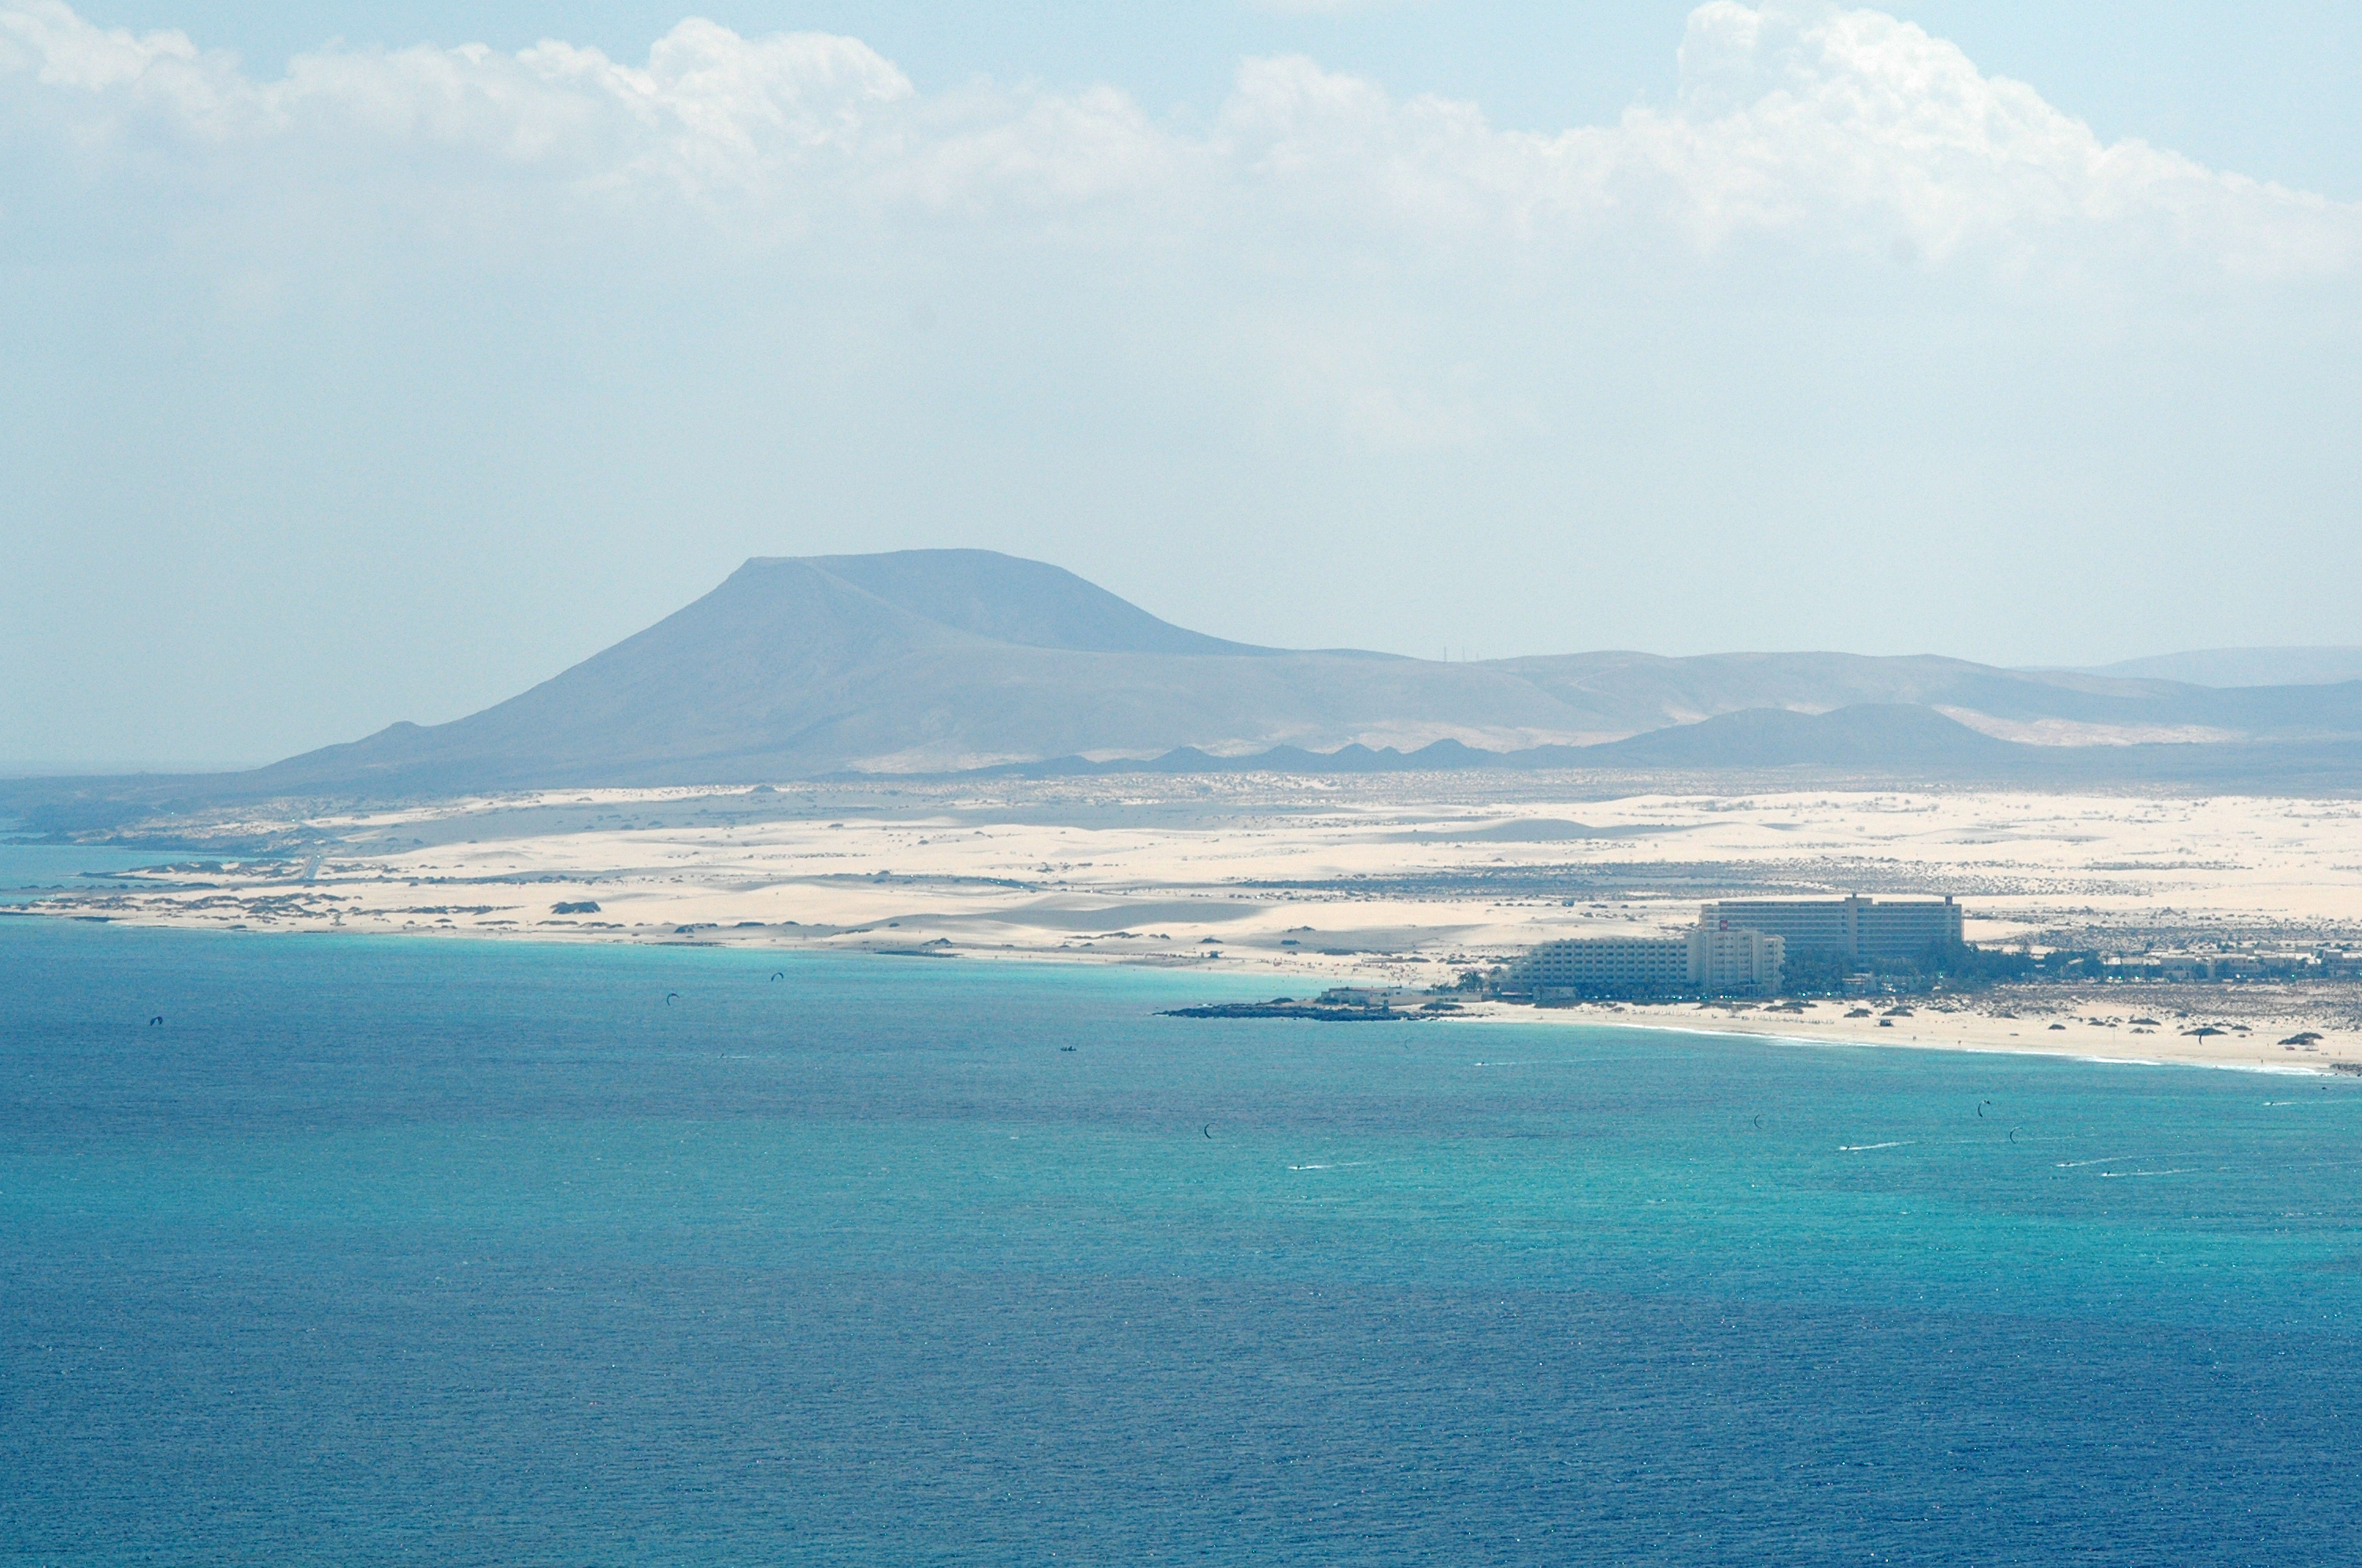 The village of Corralejo in Fuerteventura